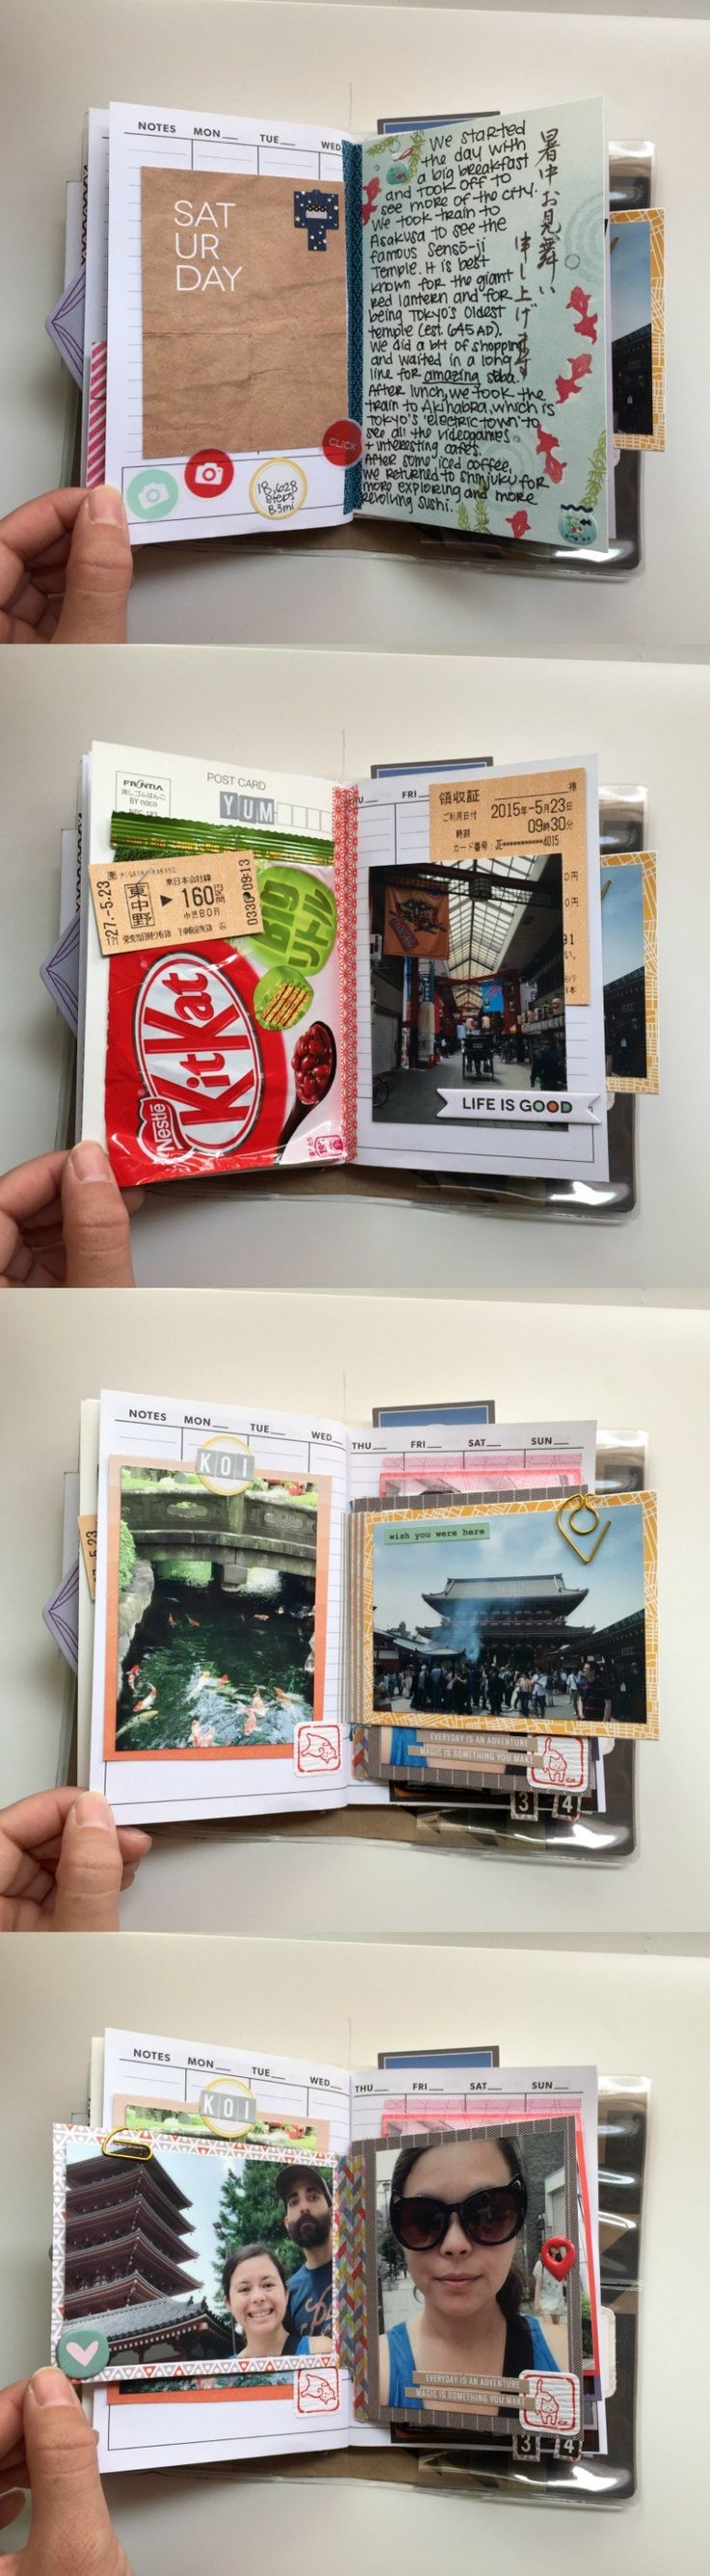 Travel Scrapbooking Using Small Wallet System by Kelly Purkey - Campfire Chic